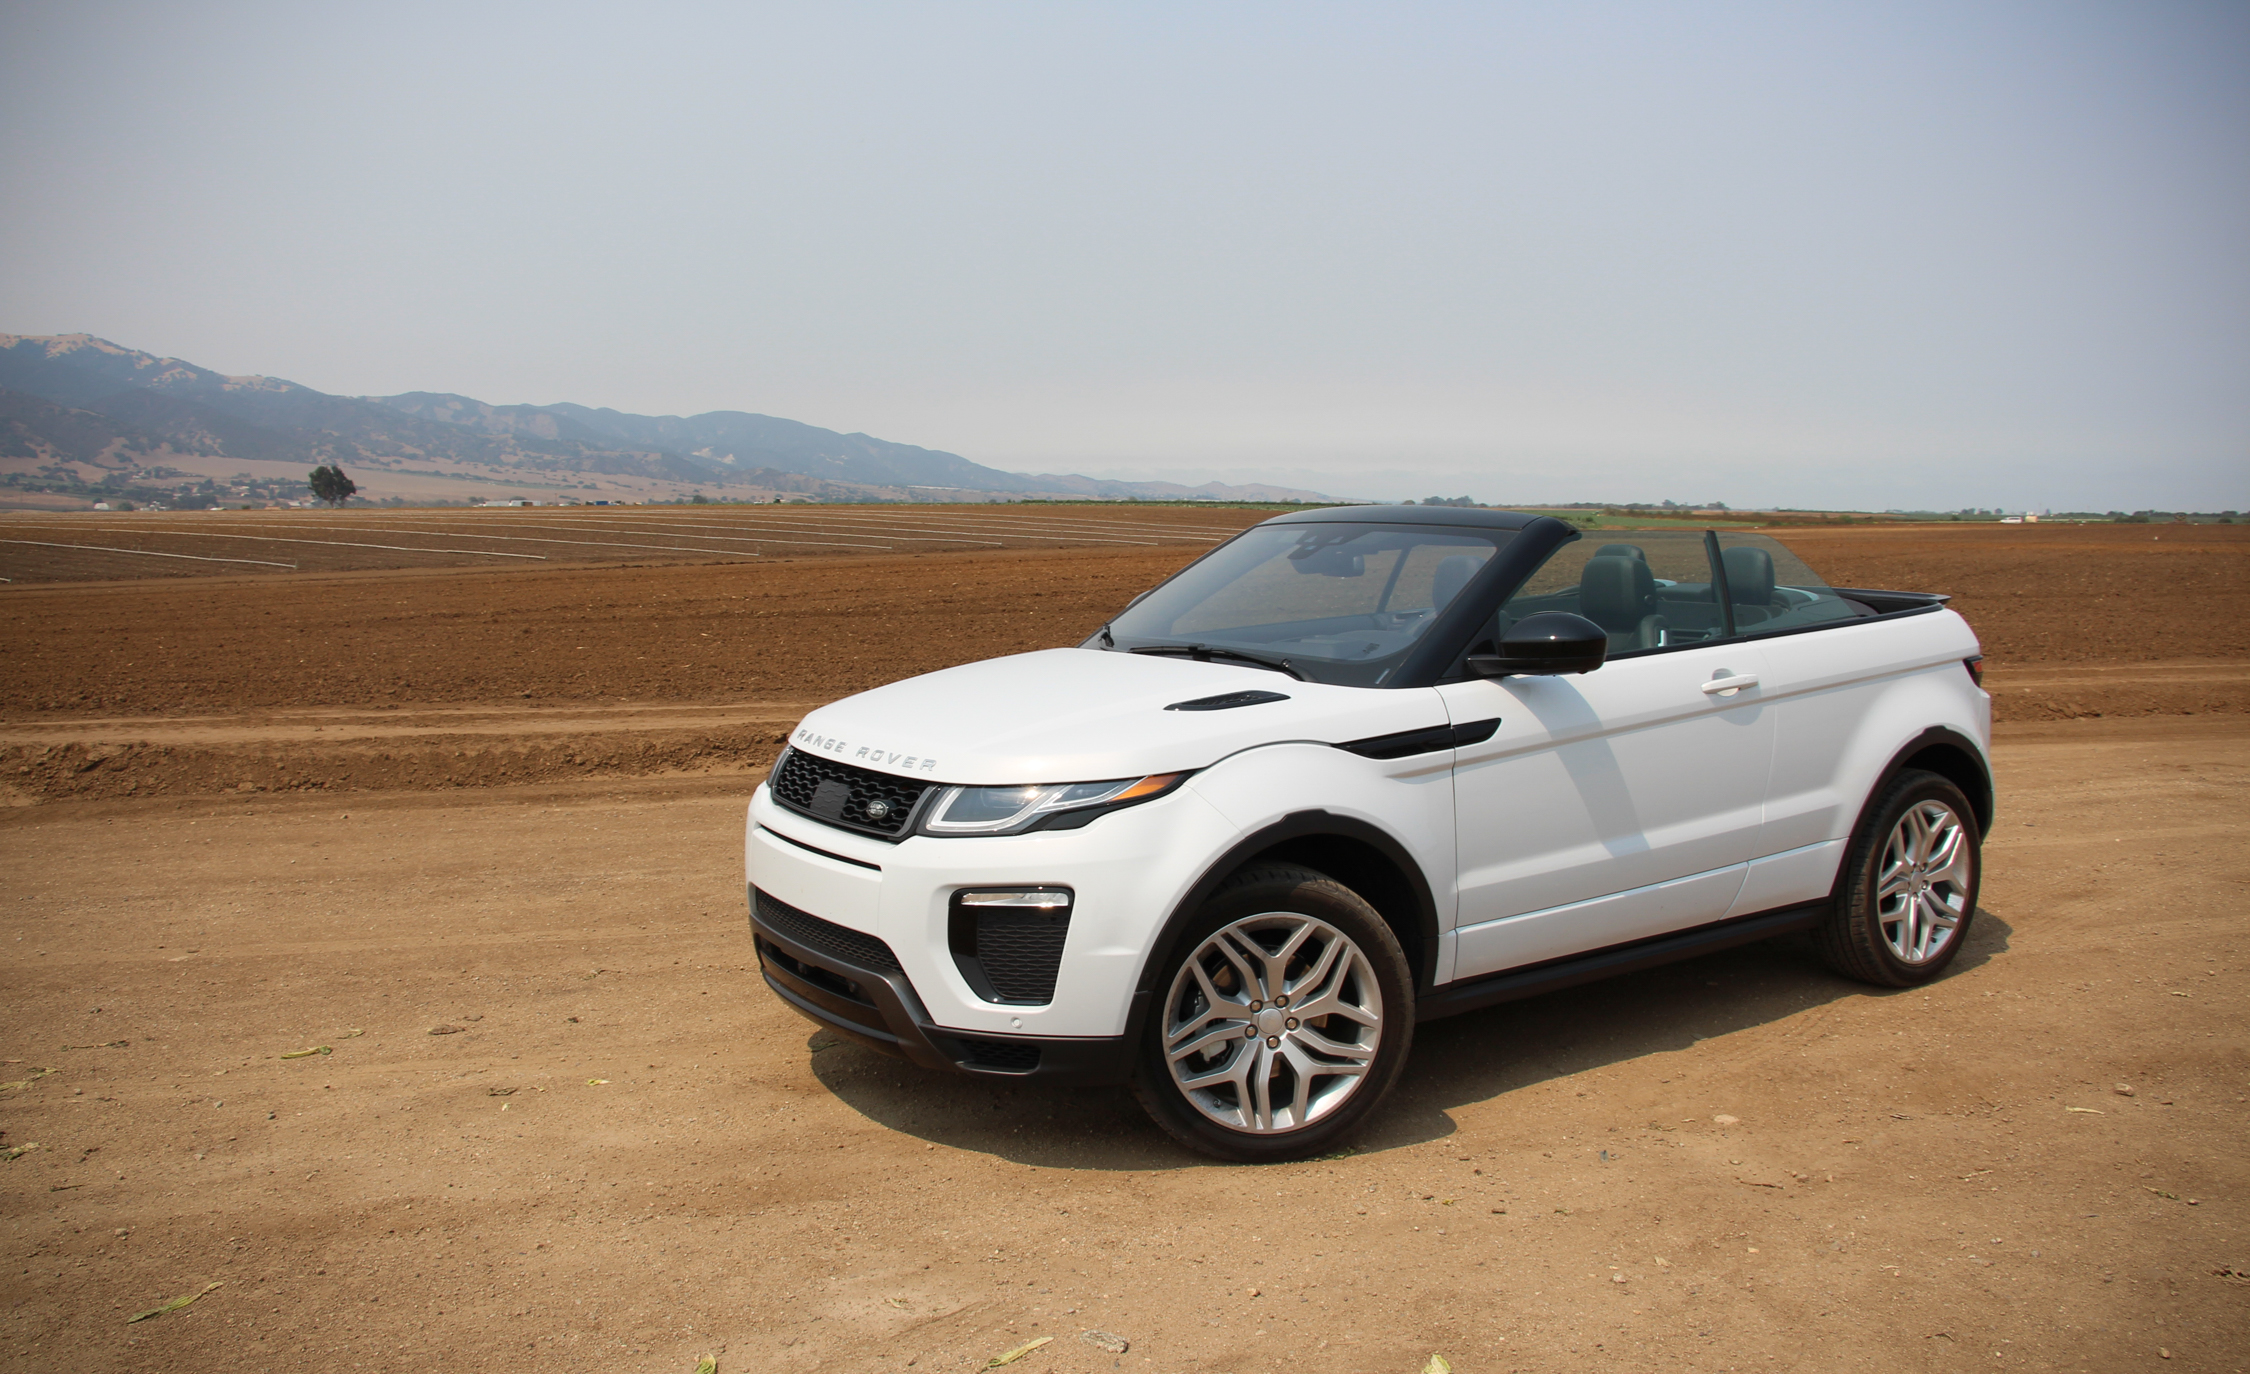 2017 land rover range rover evoque convertible cars exclusive videos and photos updates. Black Bedroom Furniture Sets. Home Design Ideas